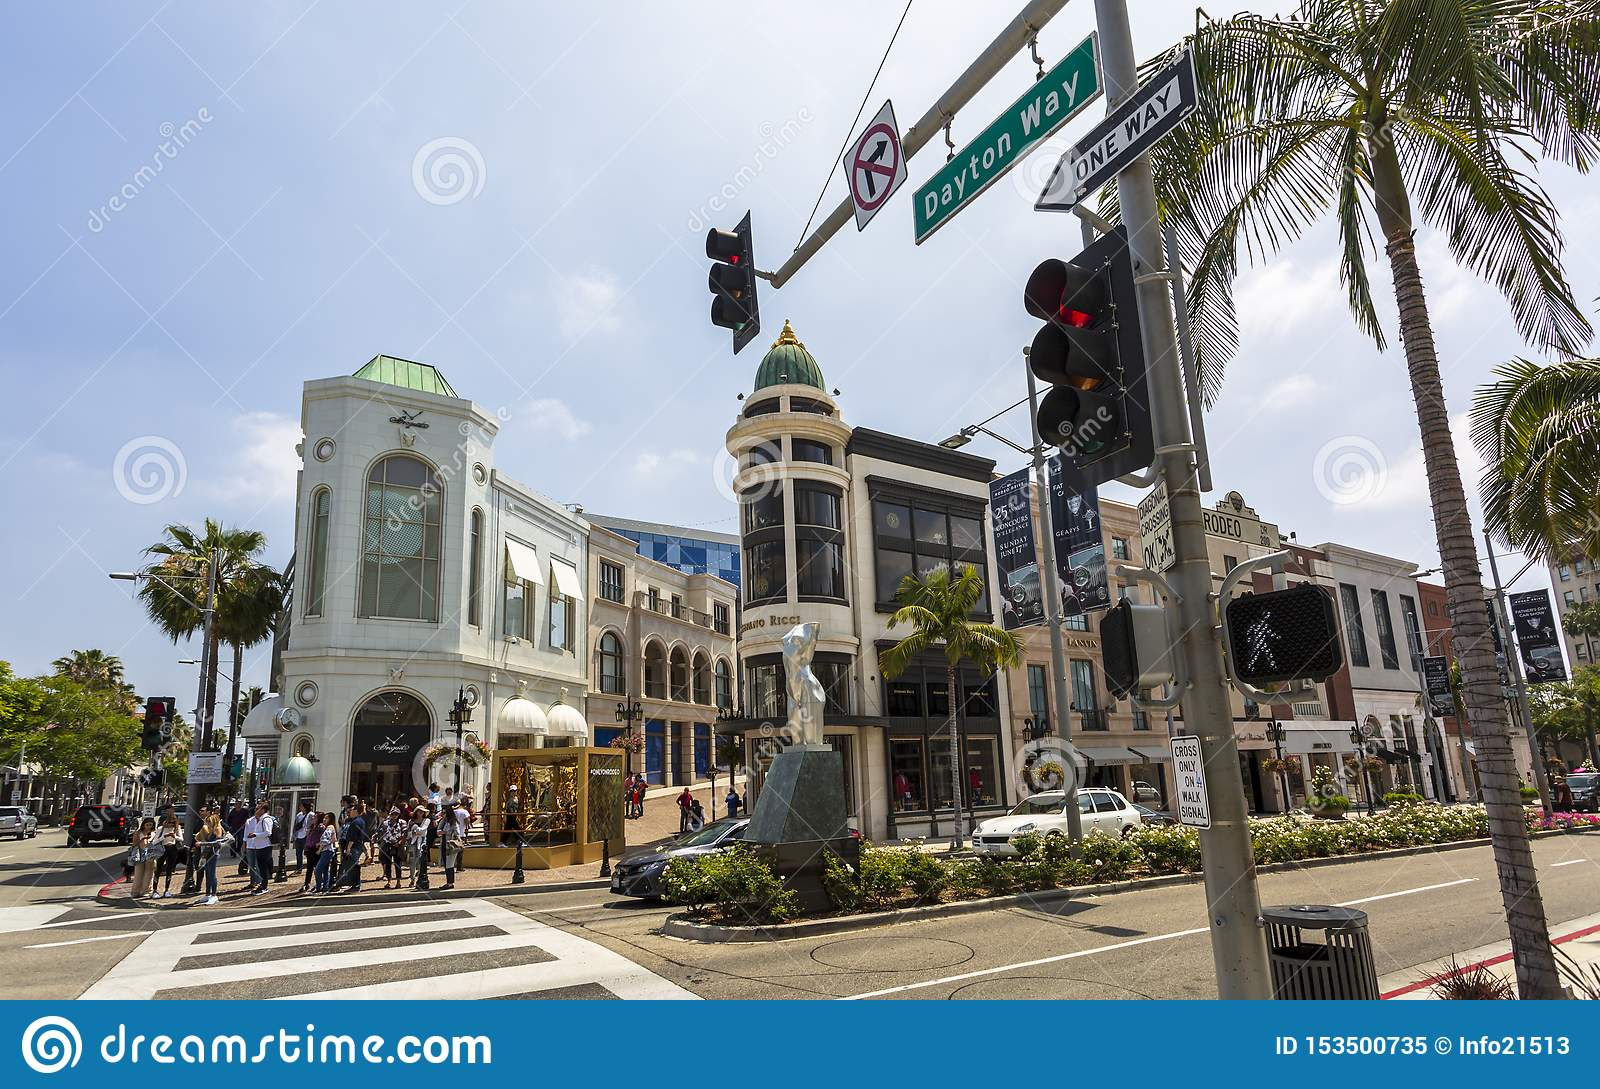 Rodeo Drive, Beverly Hills, Los Angeles, California, los Estados Unidos de América, Norteamérica